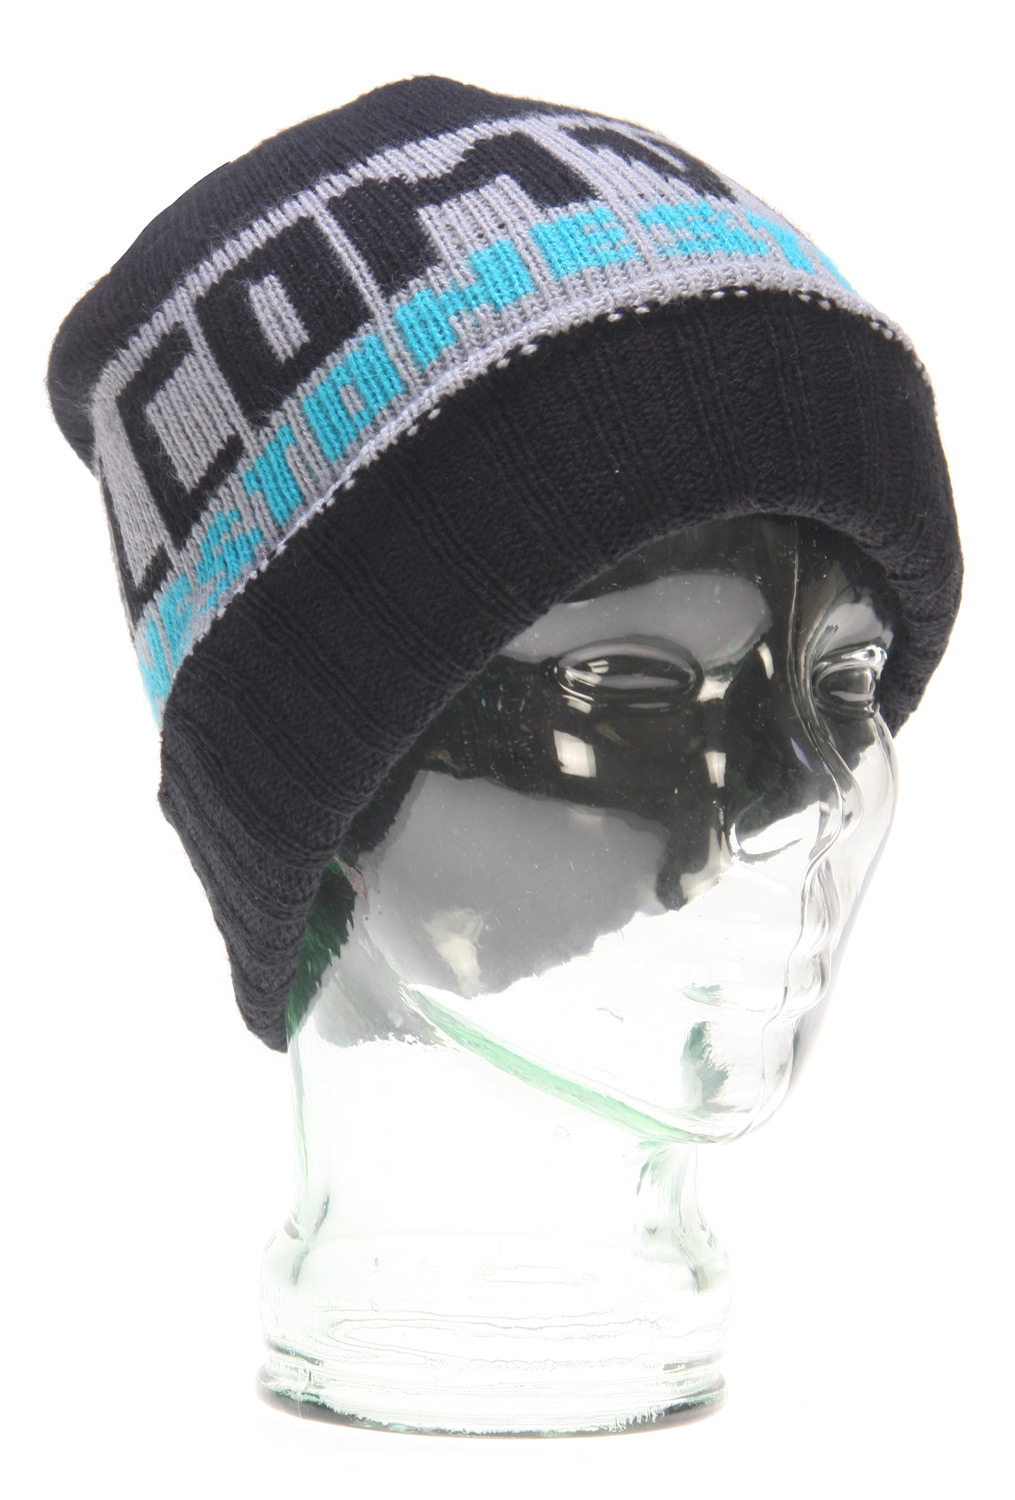 Surf Key Features of the Volcom Rationale Cuff Beanie: Cuff beanie with 2-color 'Volcom Stone' jacquard and brushed yarns that deliver a vintage hand feel/appearance 100% Acrylic - $20.95